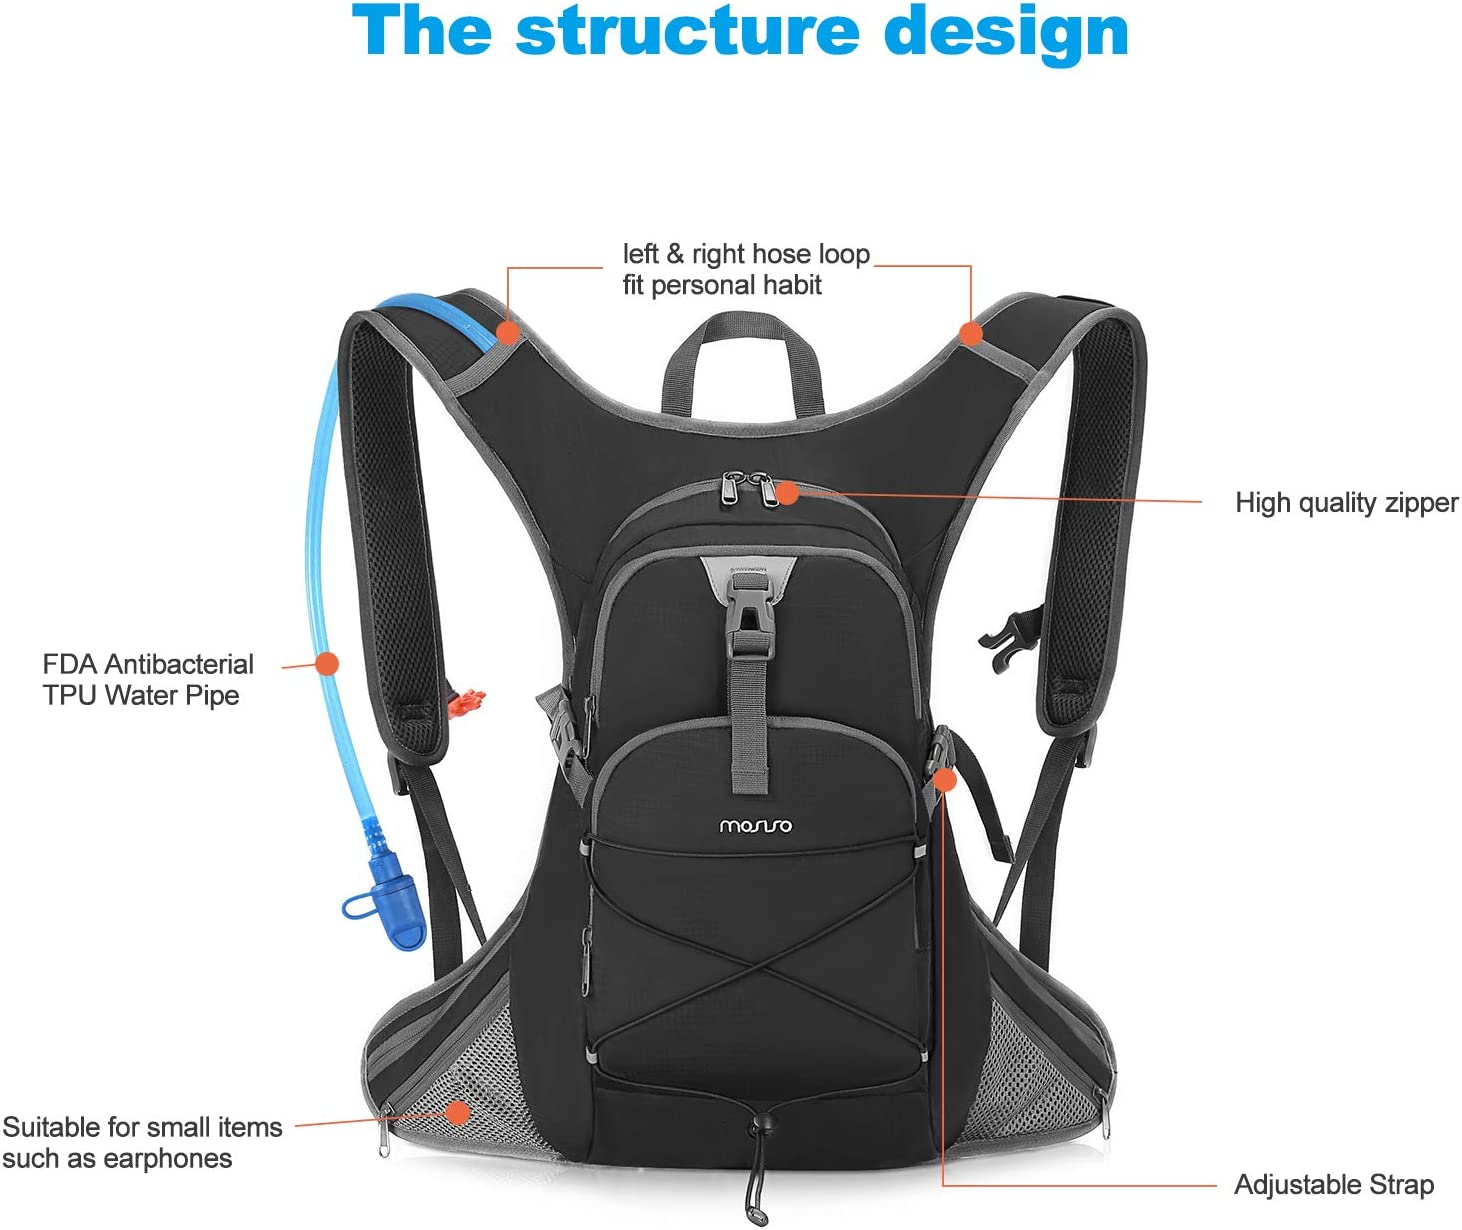 Light-Weight Compact Daypack Backpack Rucksack with 2 Liter Water Hydration Bladder for Sports Outdoor//Biking//Hiking//Mountain//Running//Climbing//Cycling MOSISO Hydration Pack Backpack Black